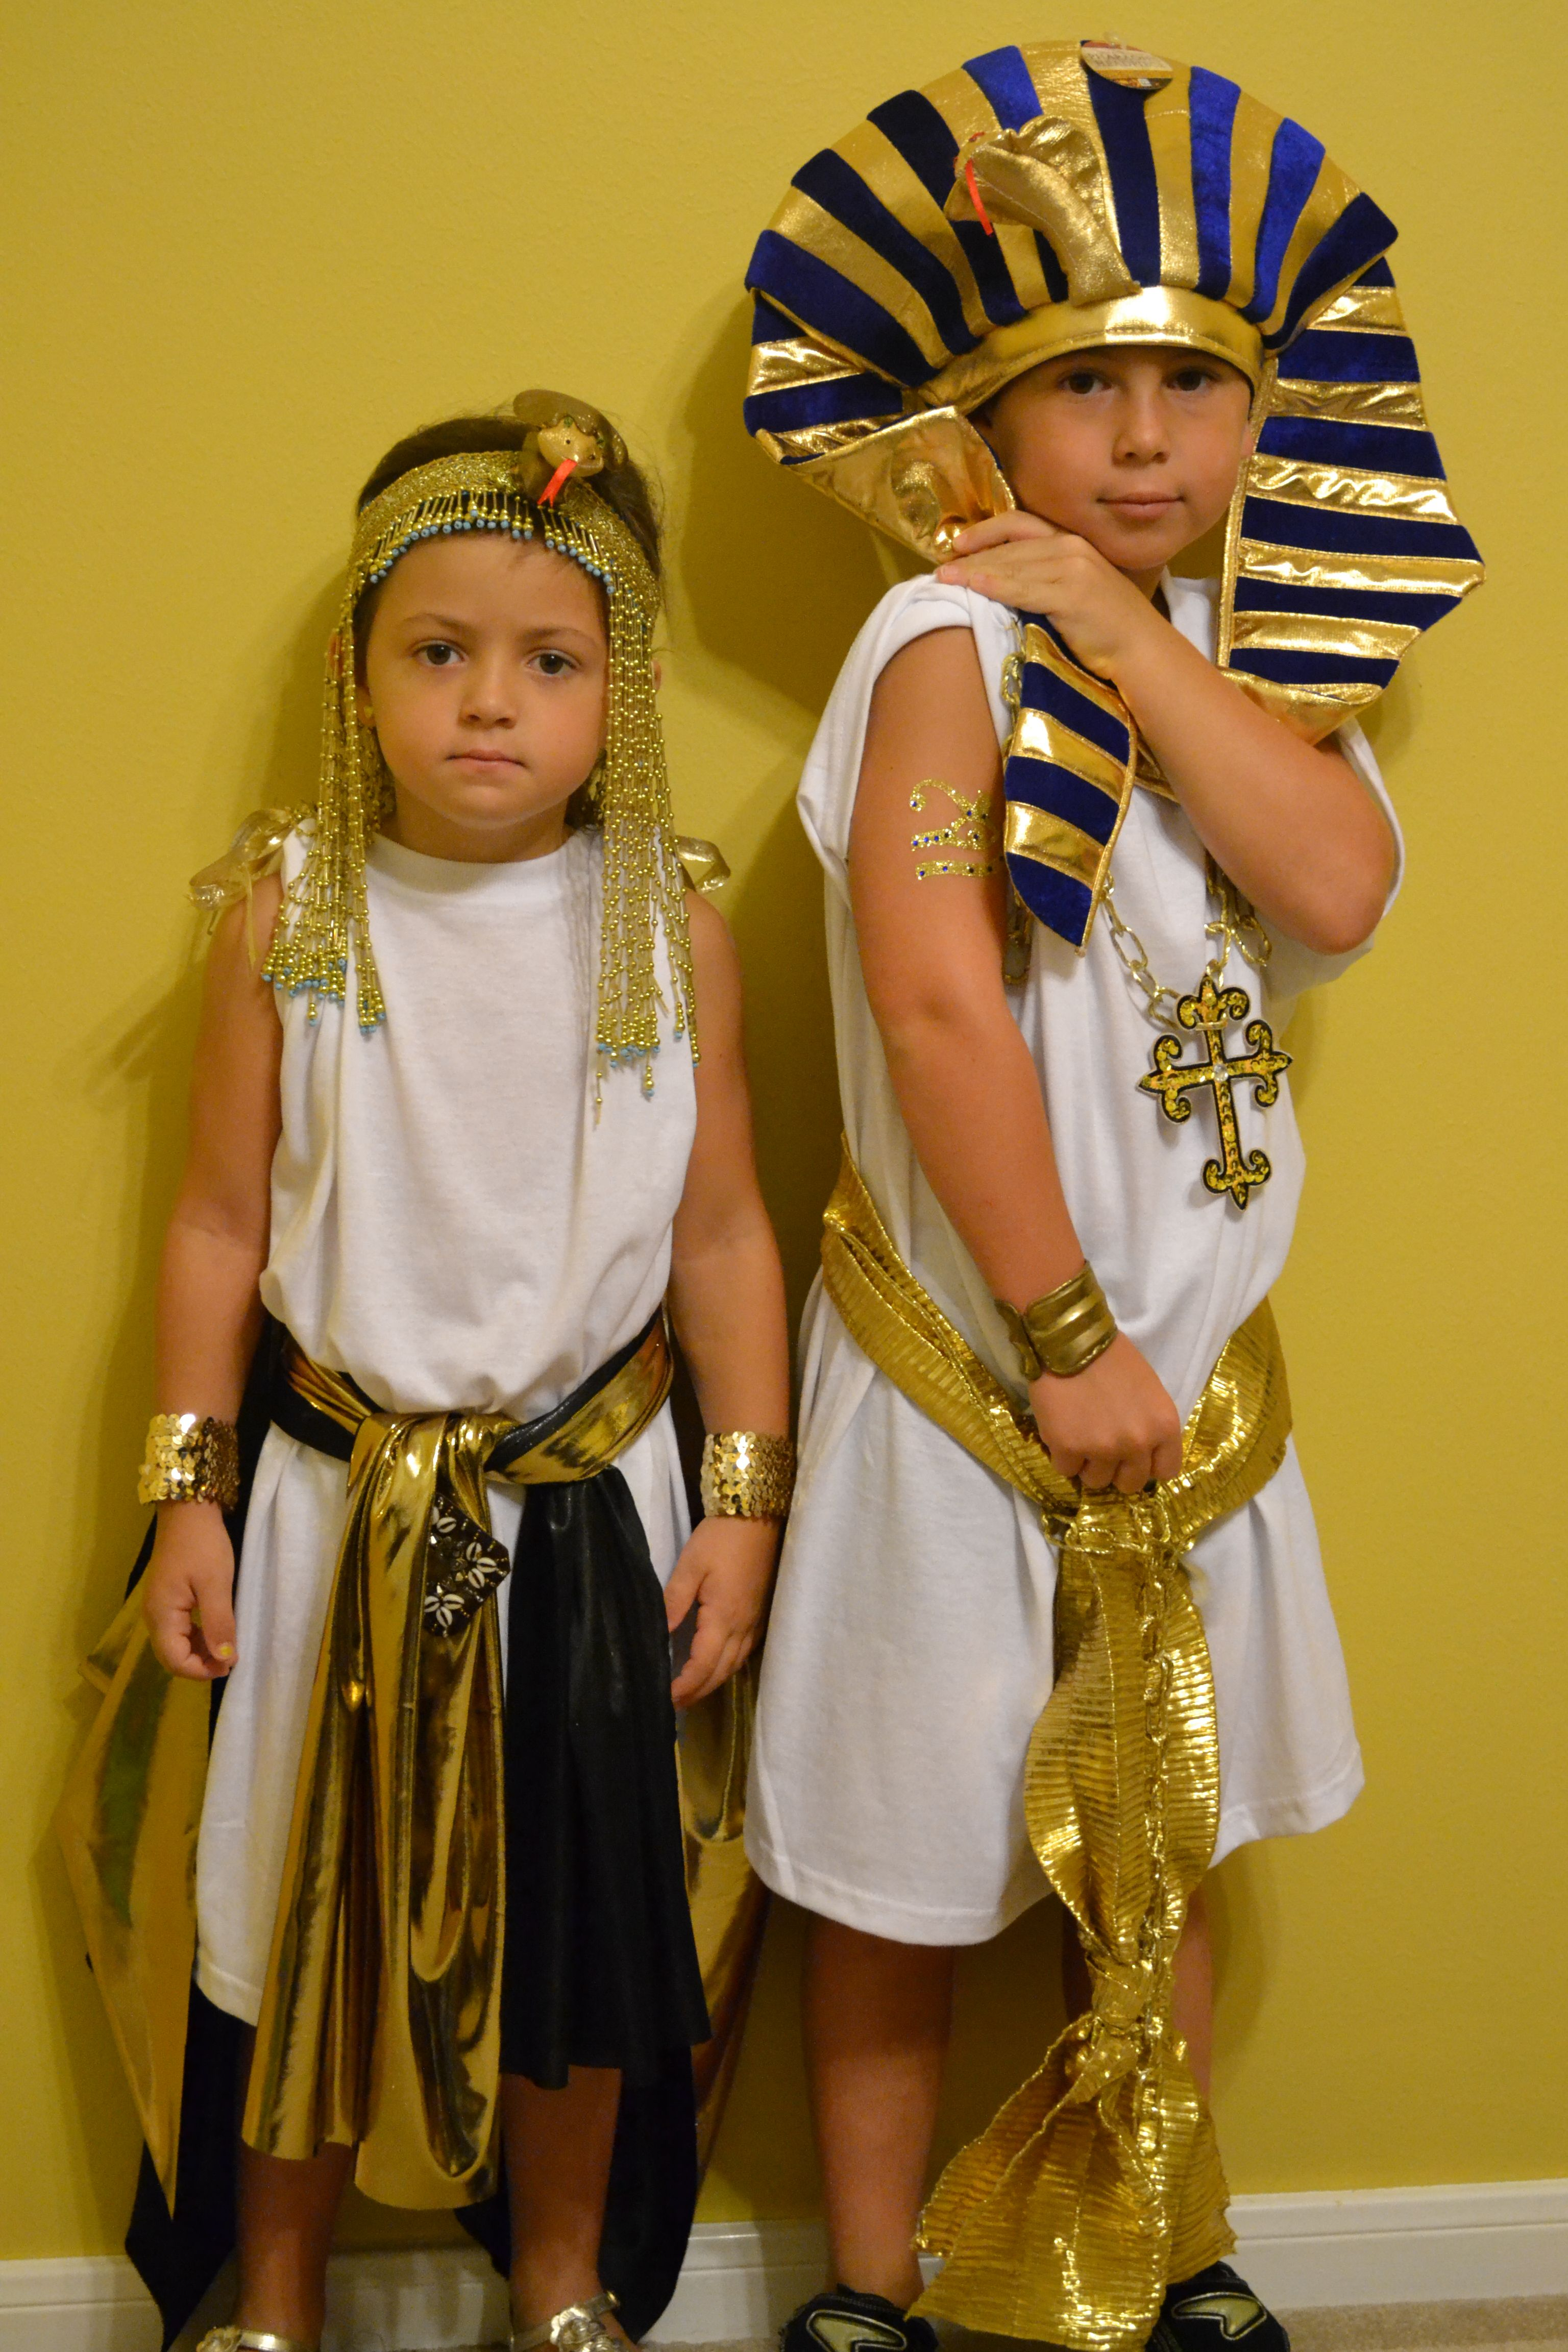 Design your t-shirt egypt - Pharoah Costumes For Egyptian Week At School I Started With Small Adult White T